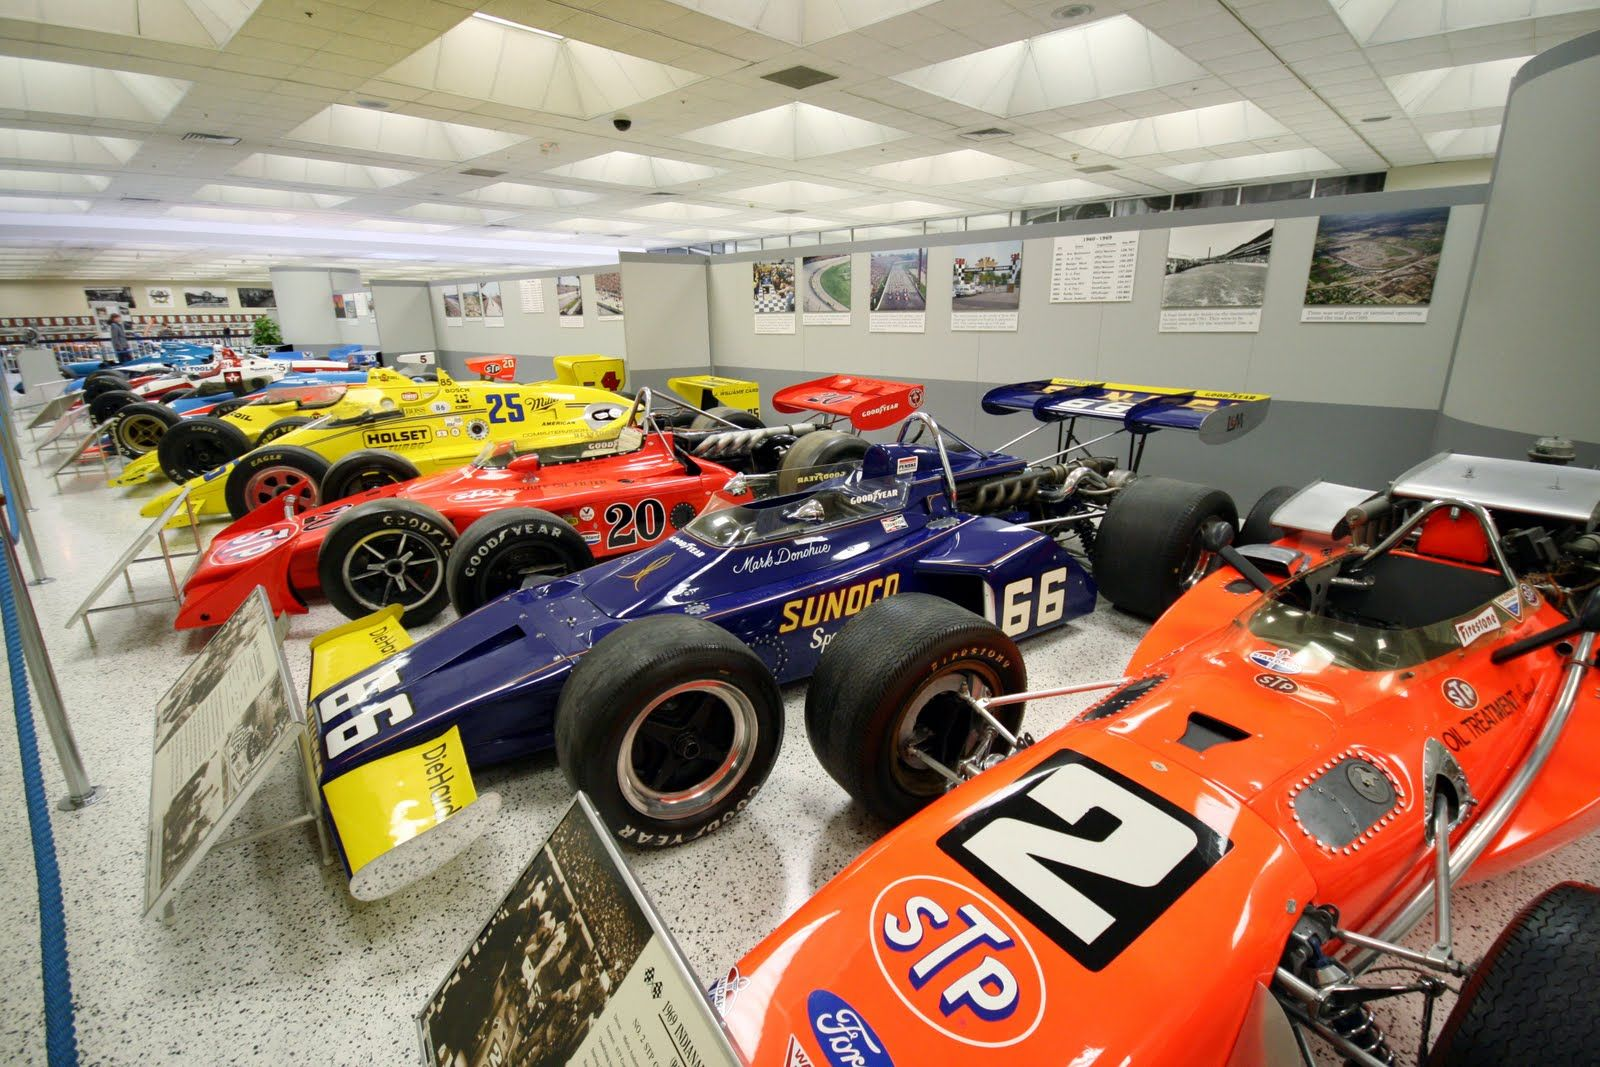 Indianapolis Motor Speedway Museum Auto Race Tracks Don T Miss To See The Race Track Up Close And The Winning Race Car Free Travel Indianapolis Travel Fun